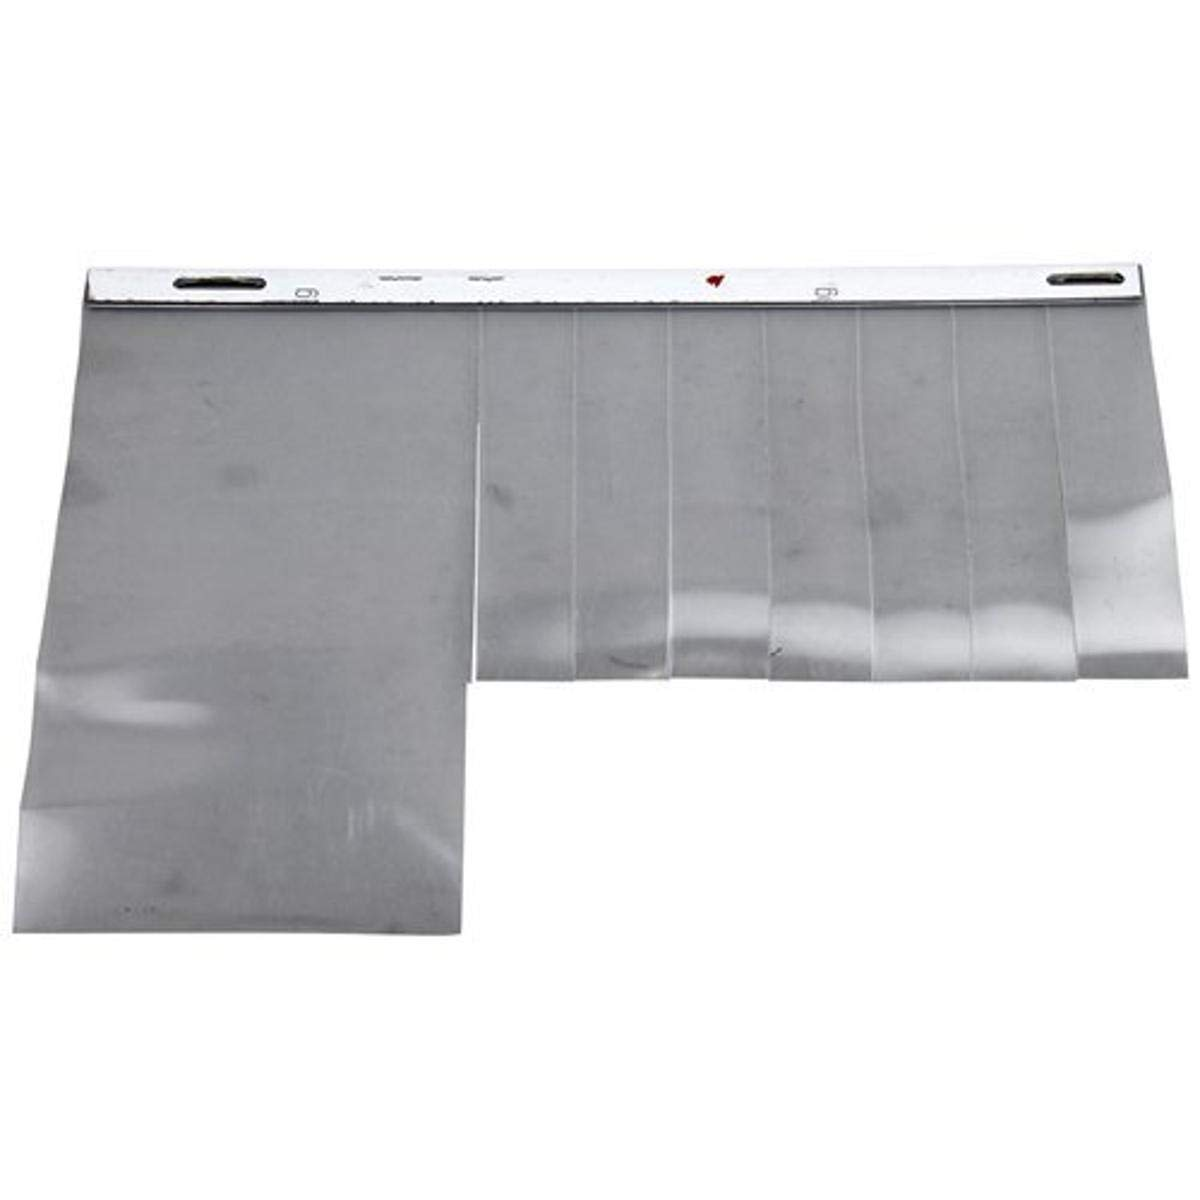 Popular products Glastender 01000656 Curtain Online limited product